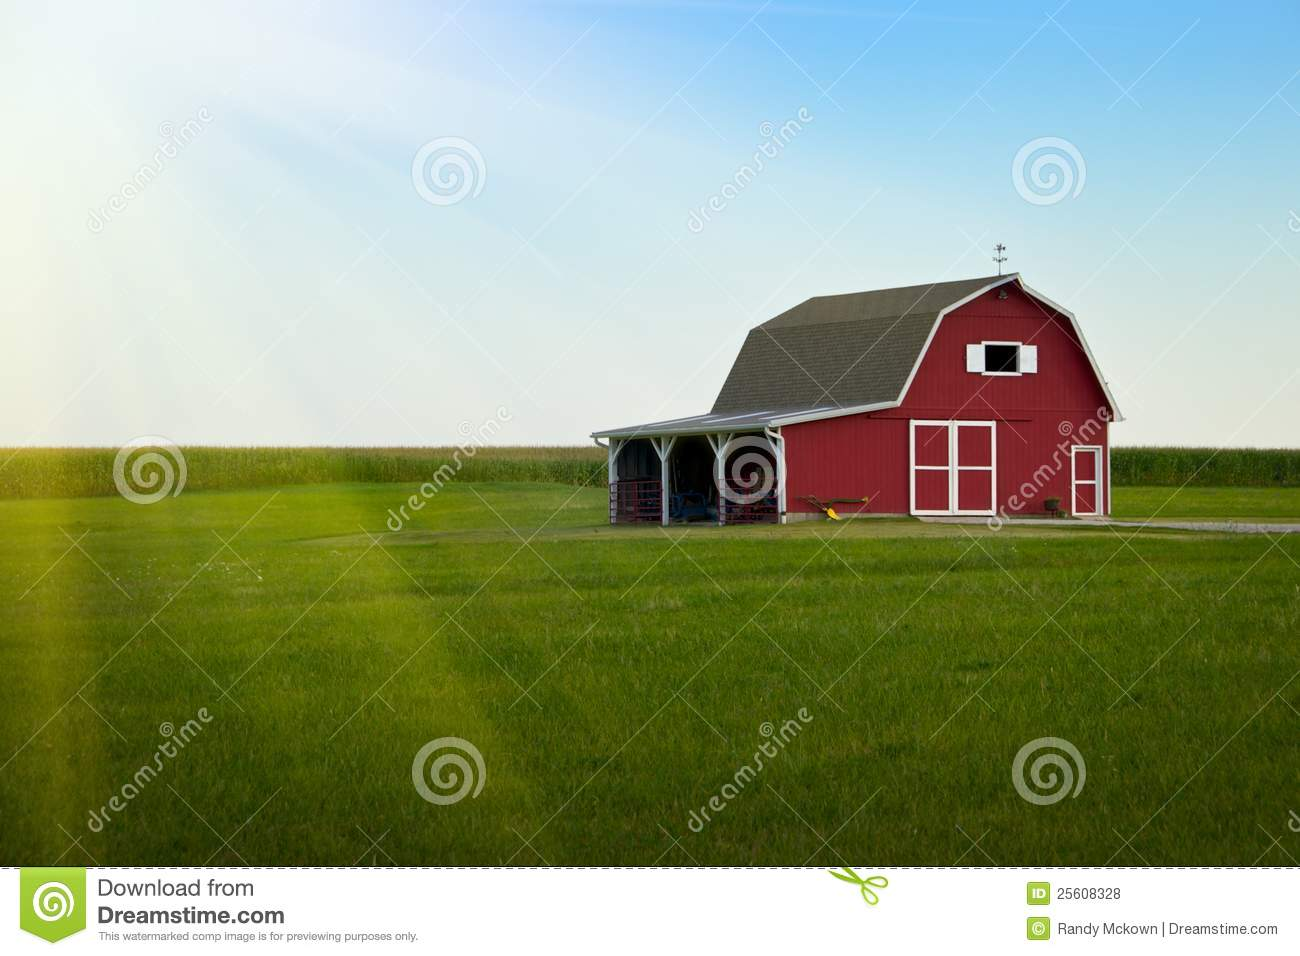 Amish Farm - Red barn and Green Field Sunrise